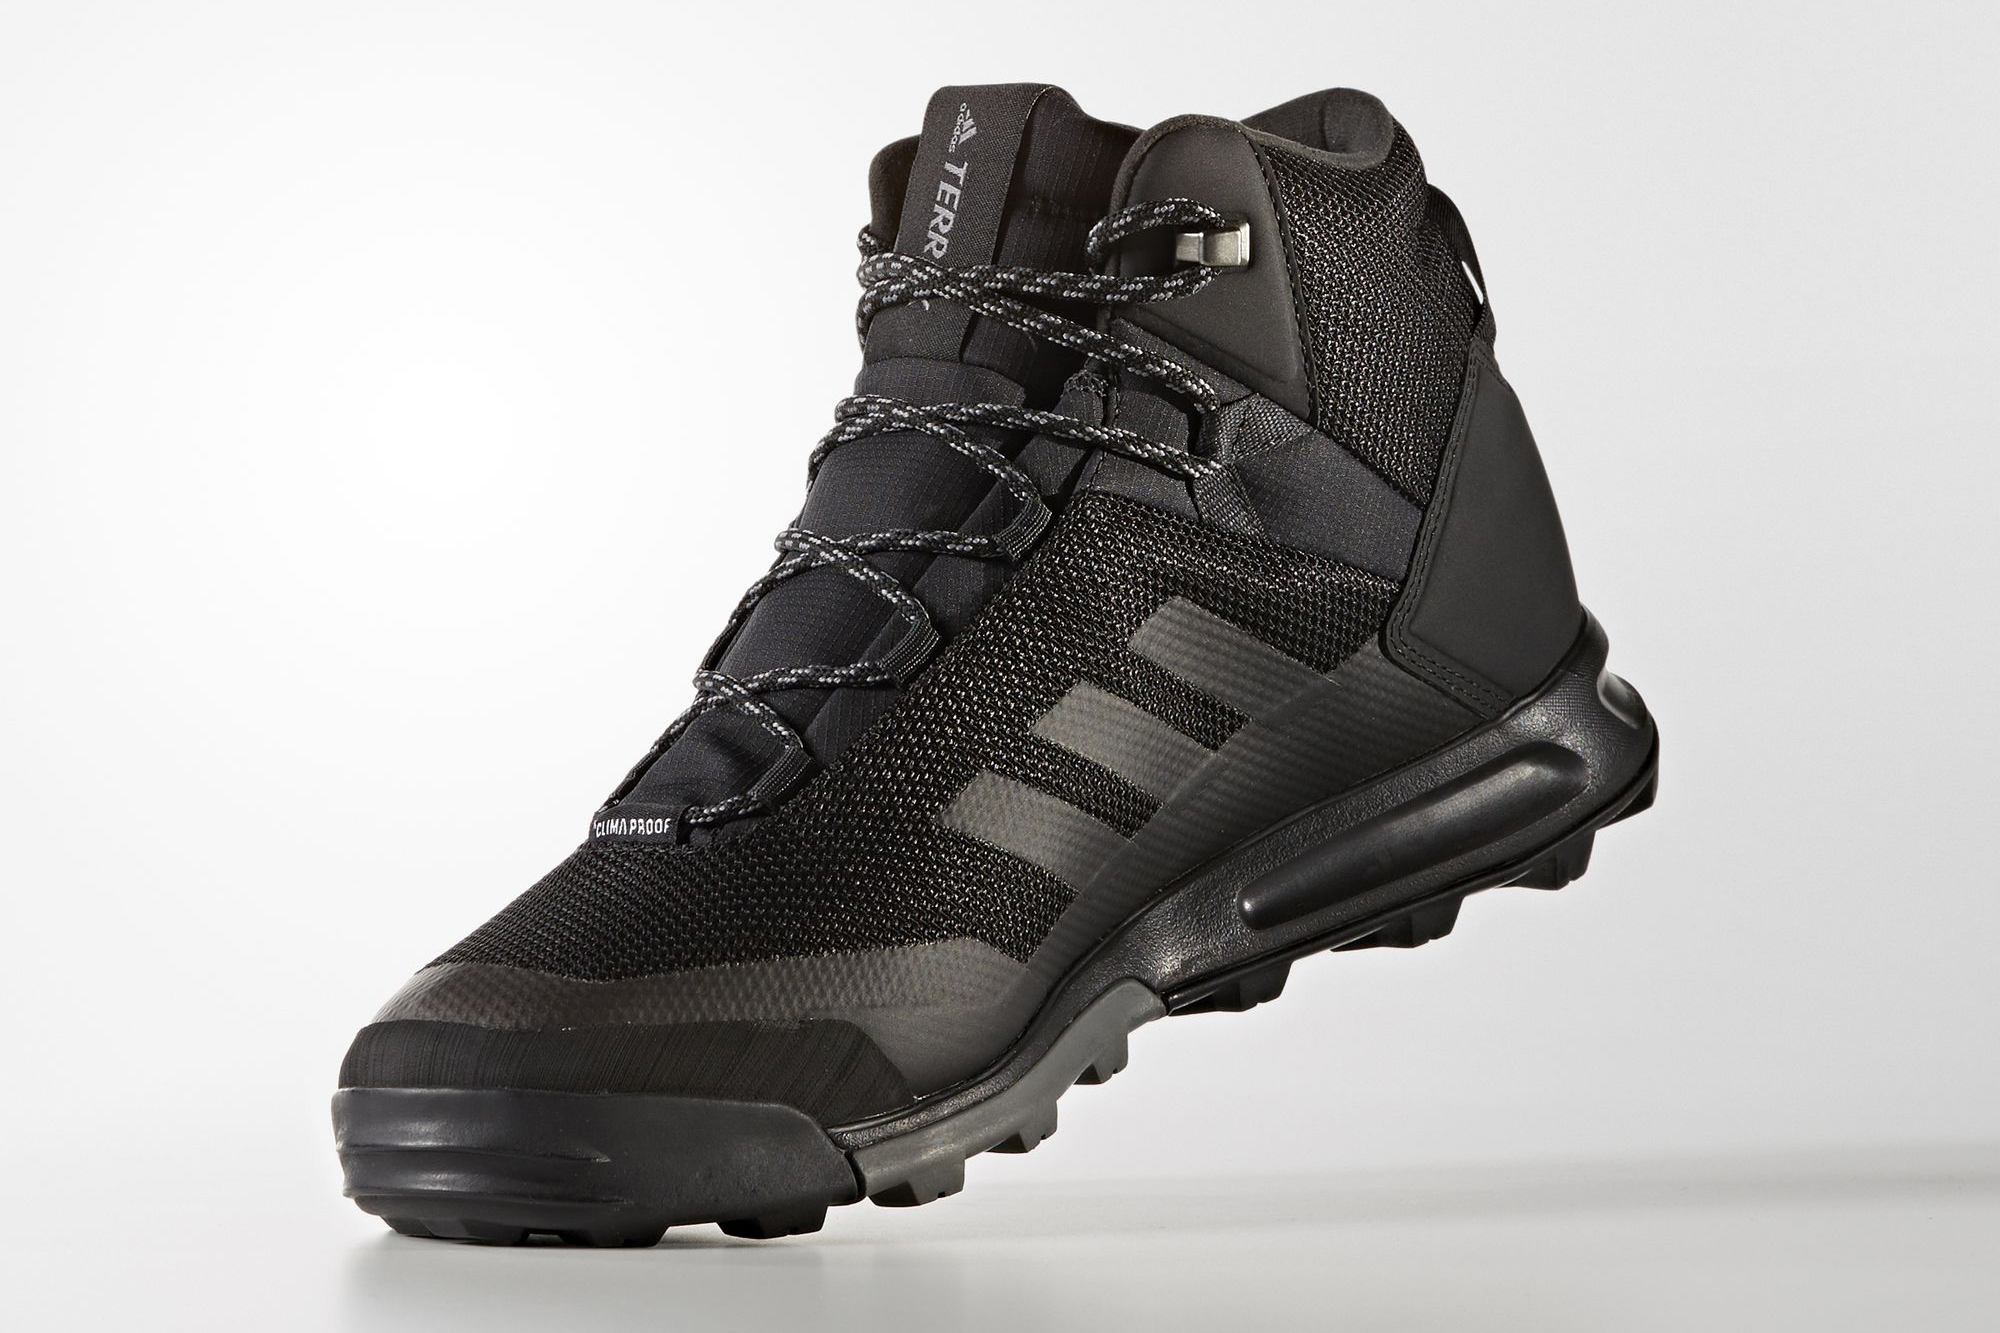 Lifestyle Outdoor: 10 Boots That Look